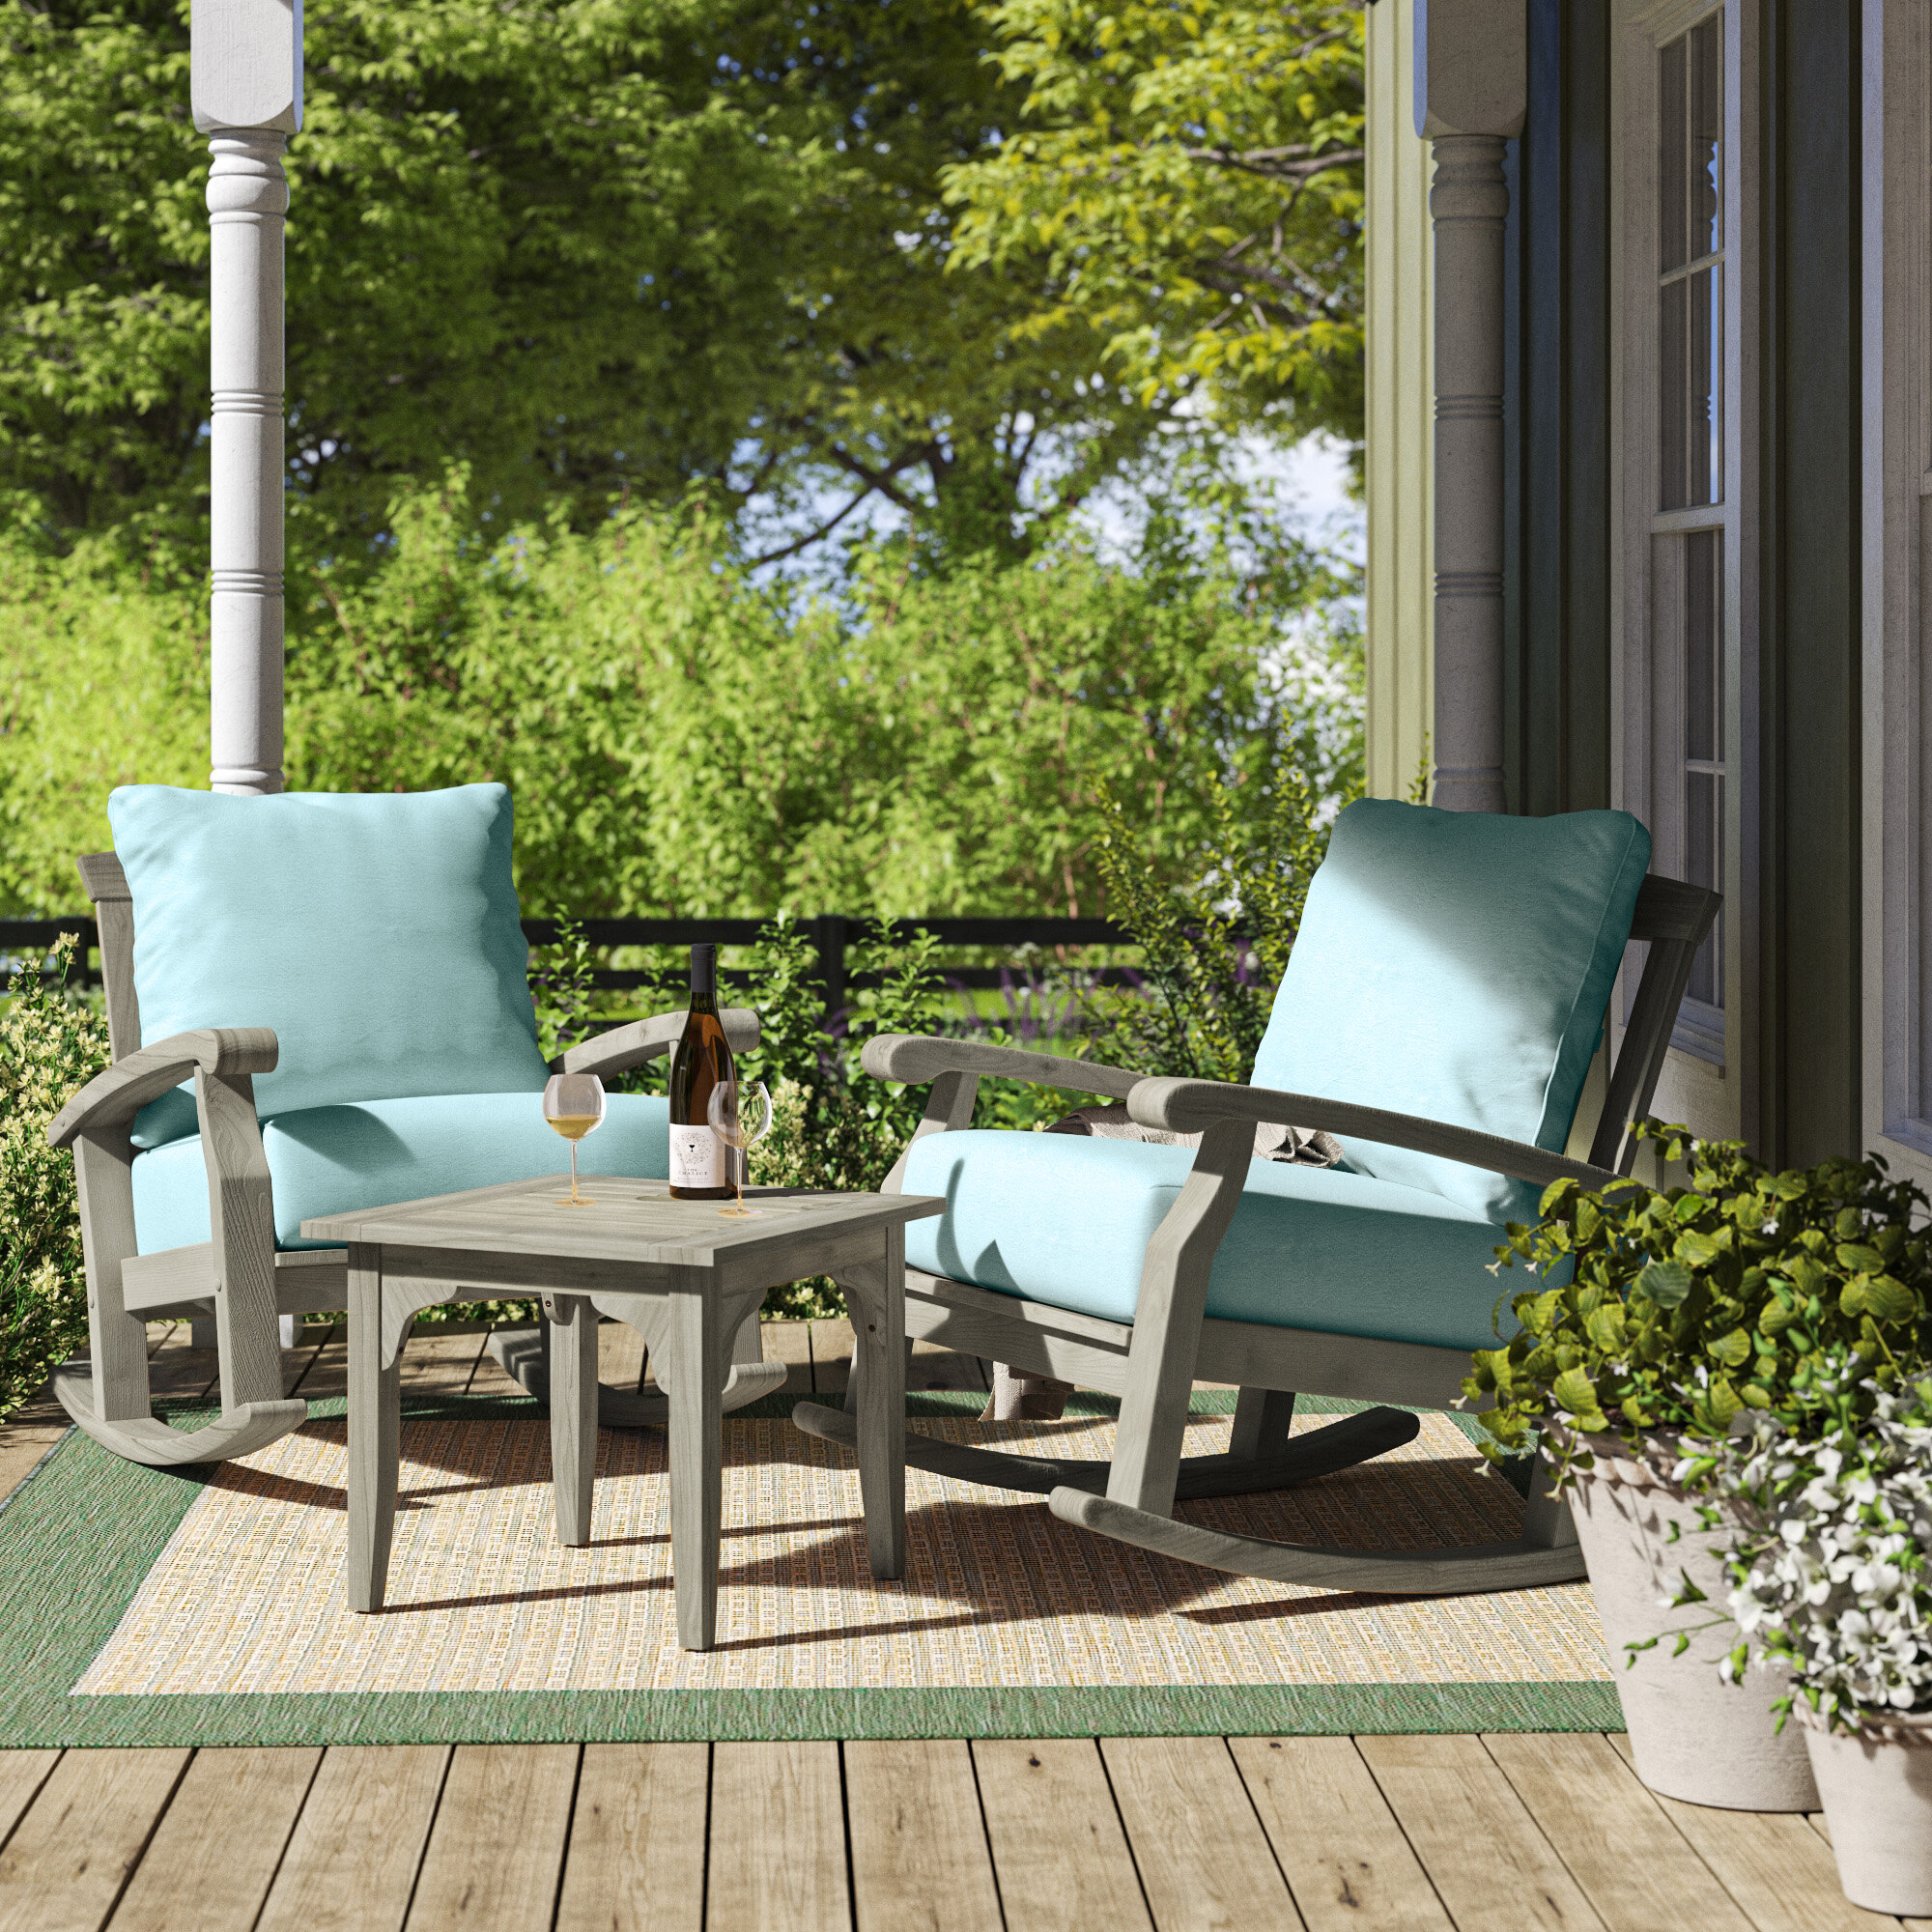 Grey Lounge Deep Seating Teak Patio Conversation Sets You Ll Love In 2021 Wayfair